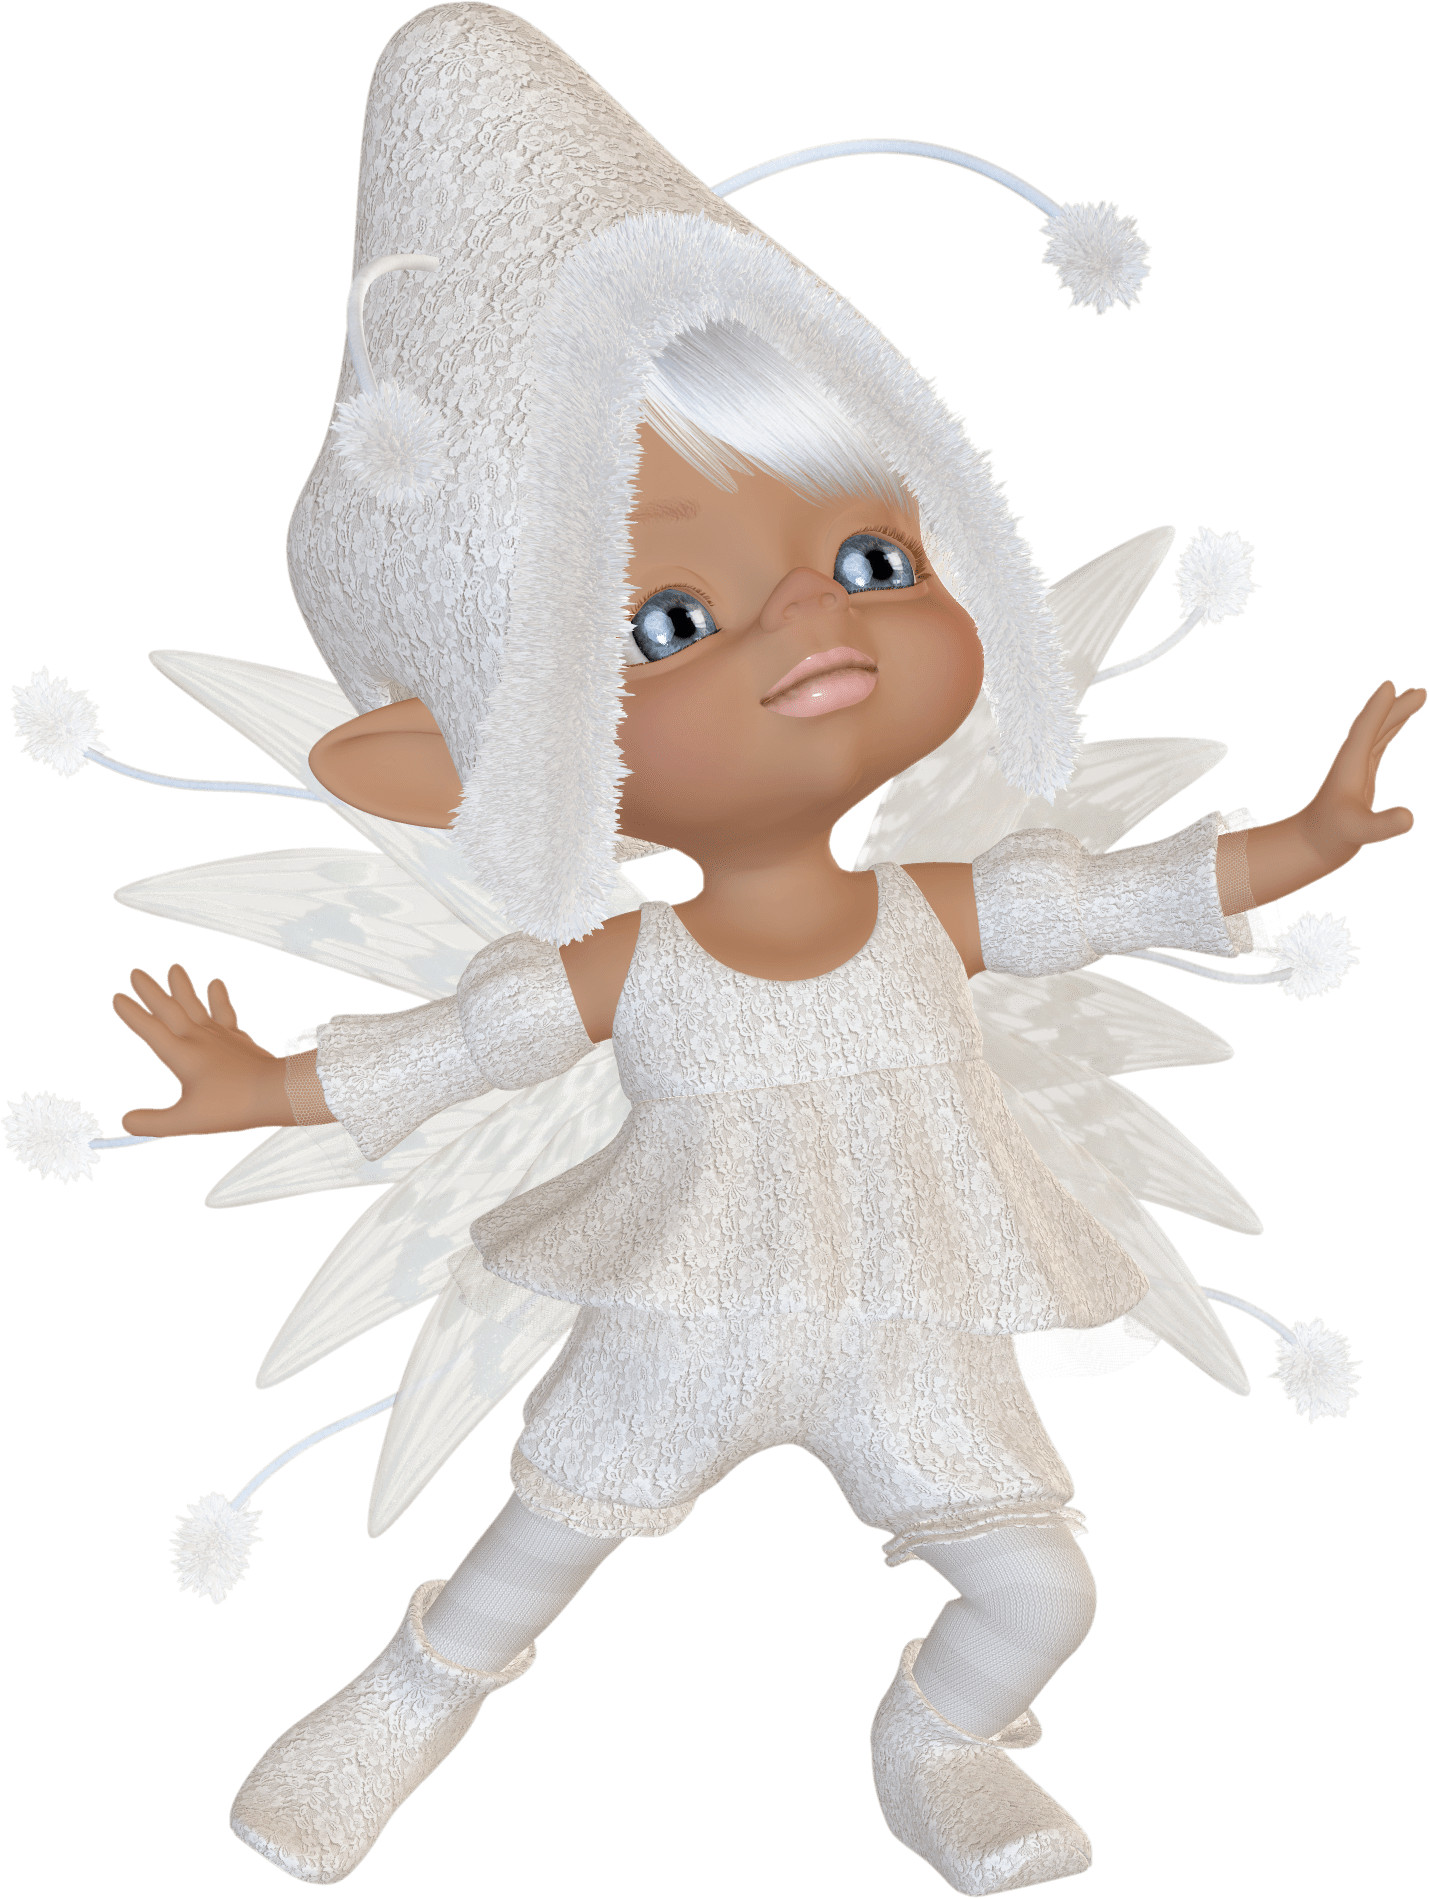 Winter archives clipartplace fairy. Clipart snow angle